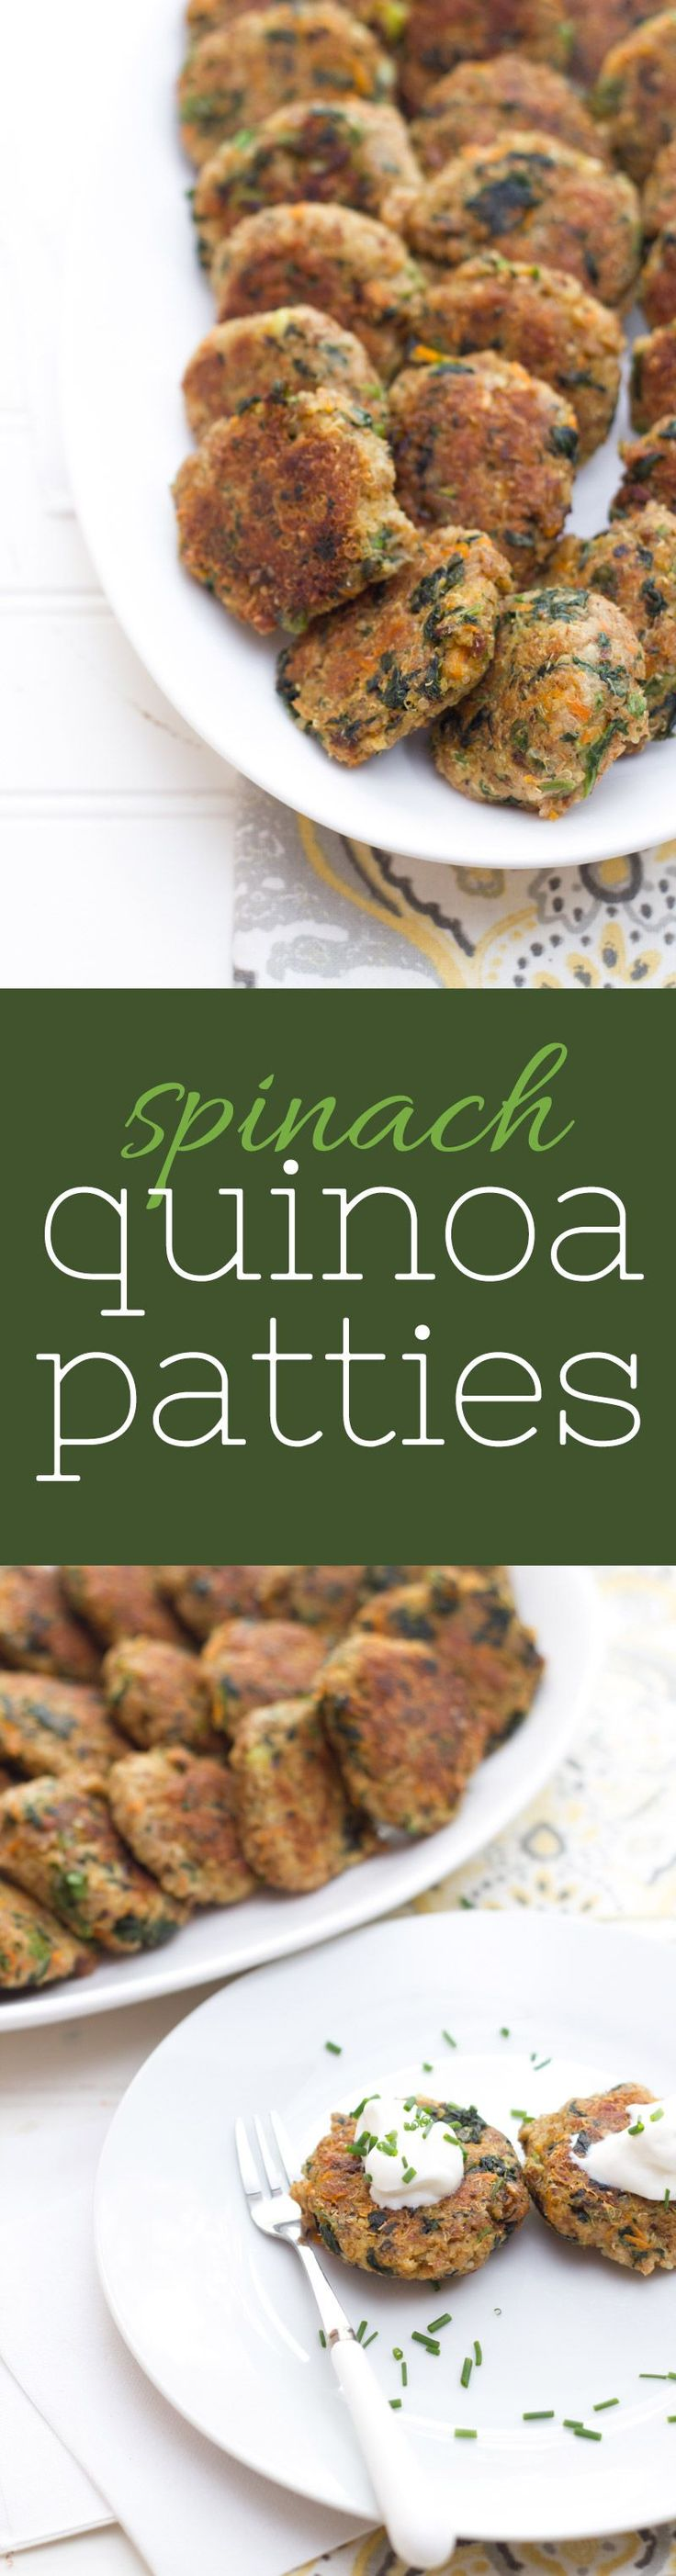 Spinach and quinoa patties. Perfect for snacks, lunches or dinner!